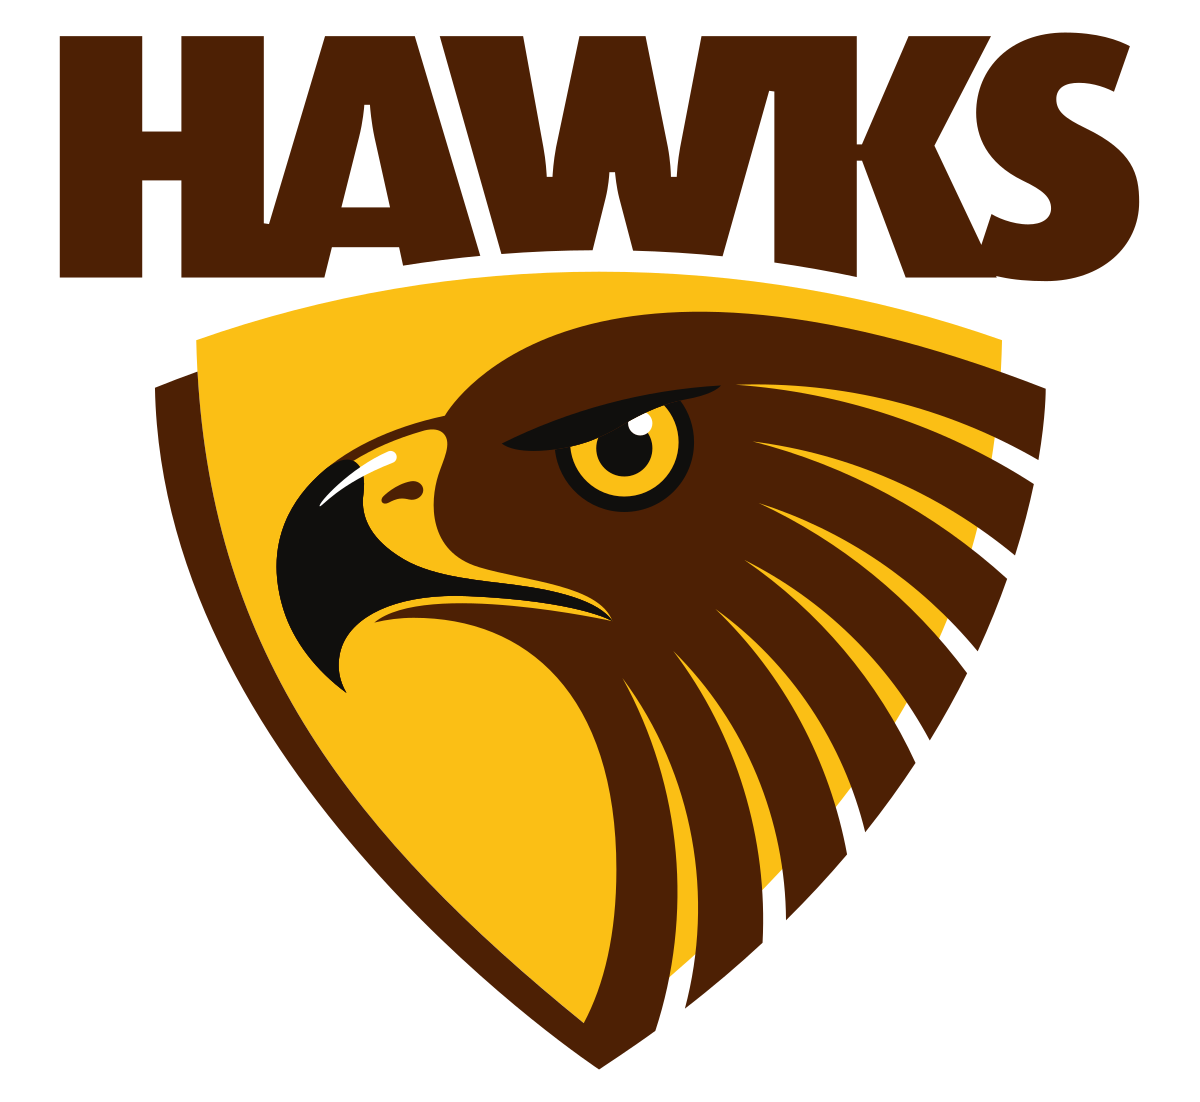 Hawk logo png. Hawthorn football club wikipedia